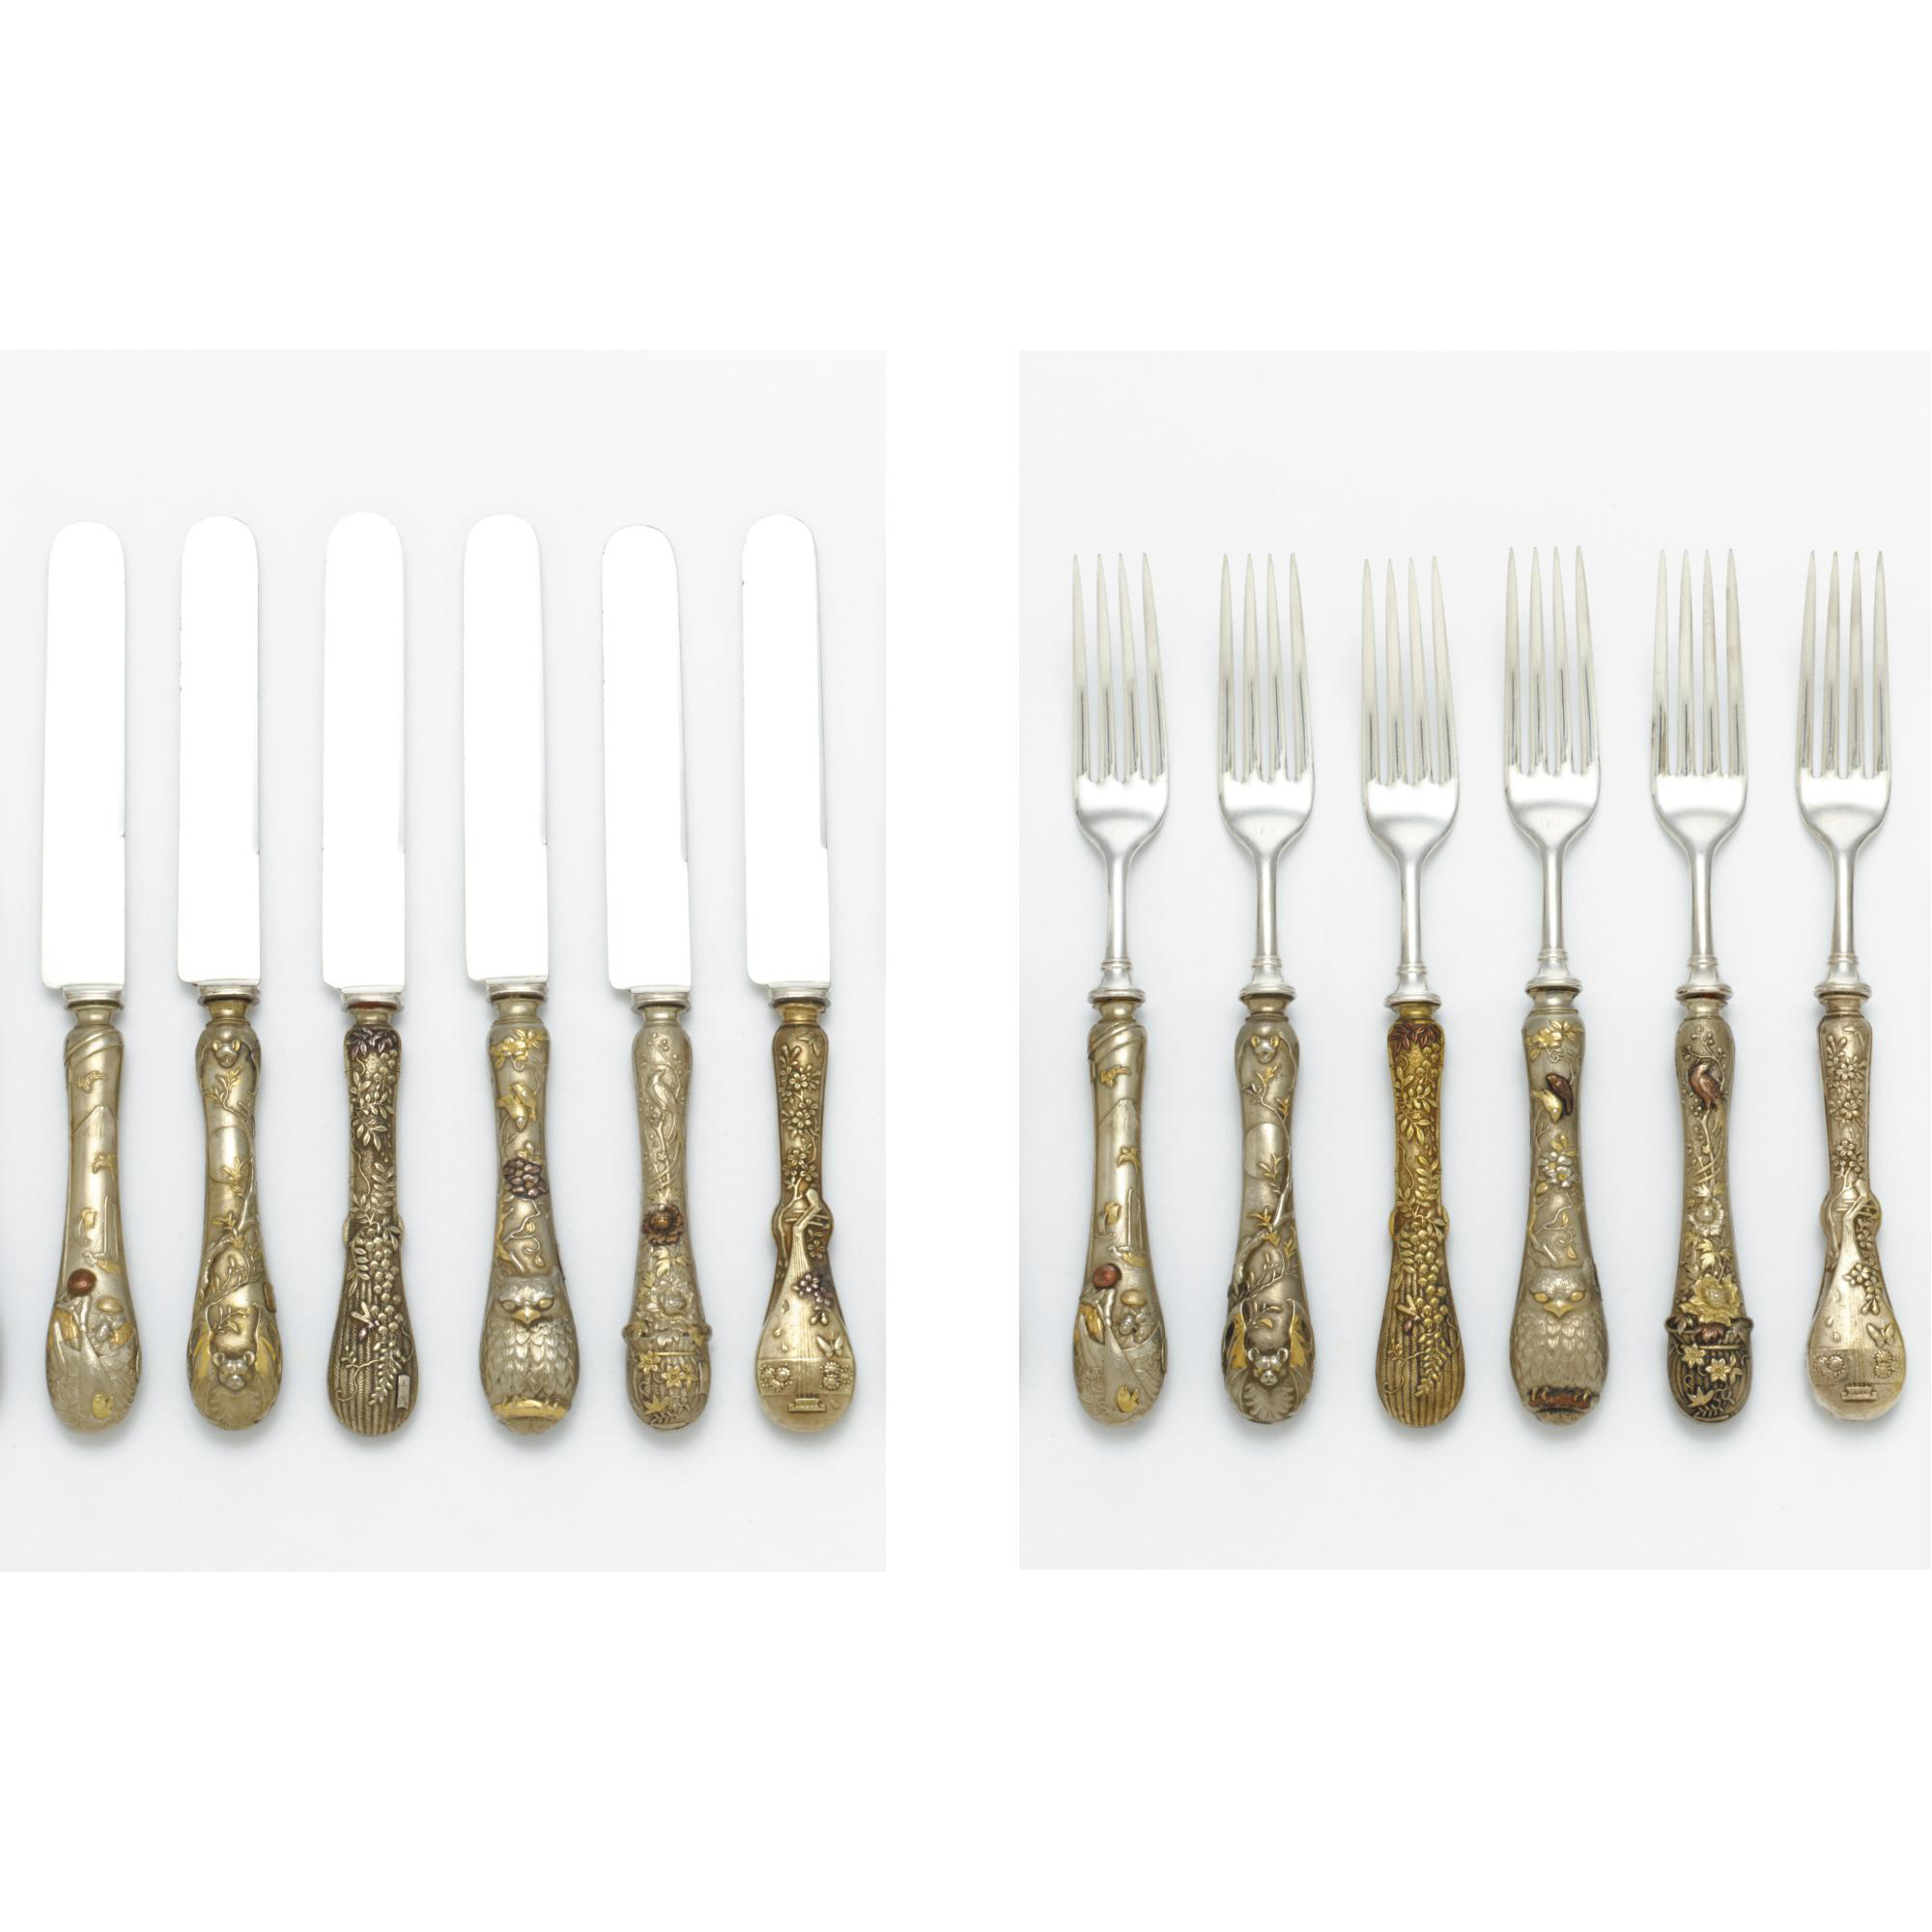 A Set of Twelve Japanese Silver-plated and Mixed Metal Dinner Knives and Twelve Dinner Forks, circa 1880